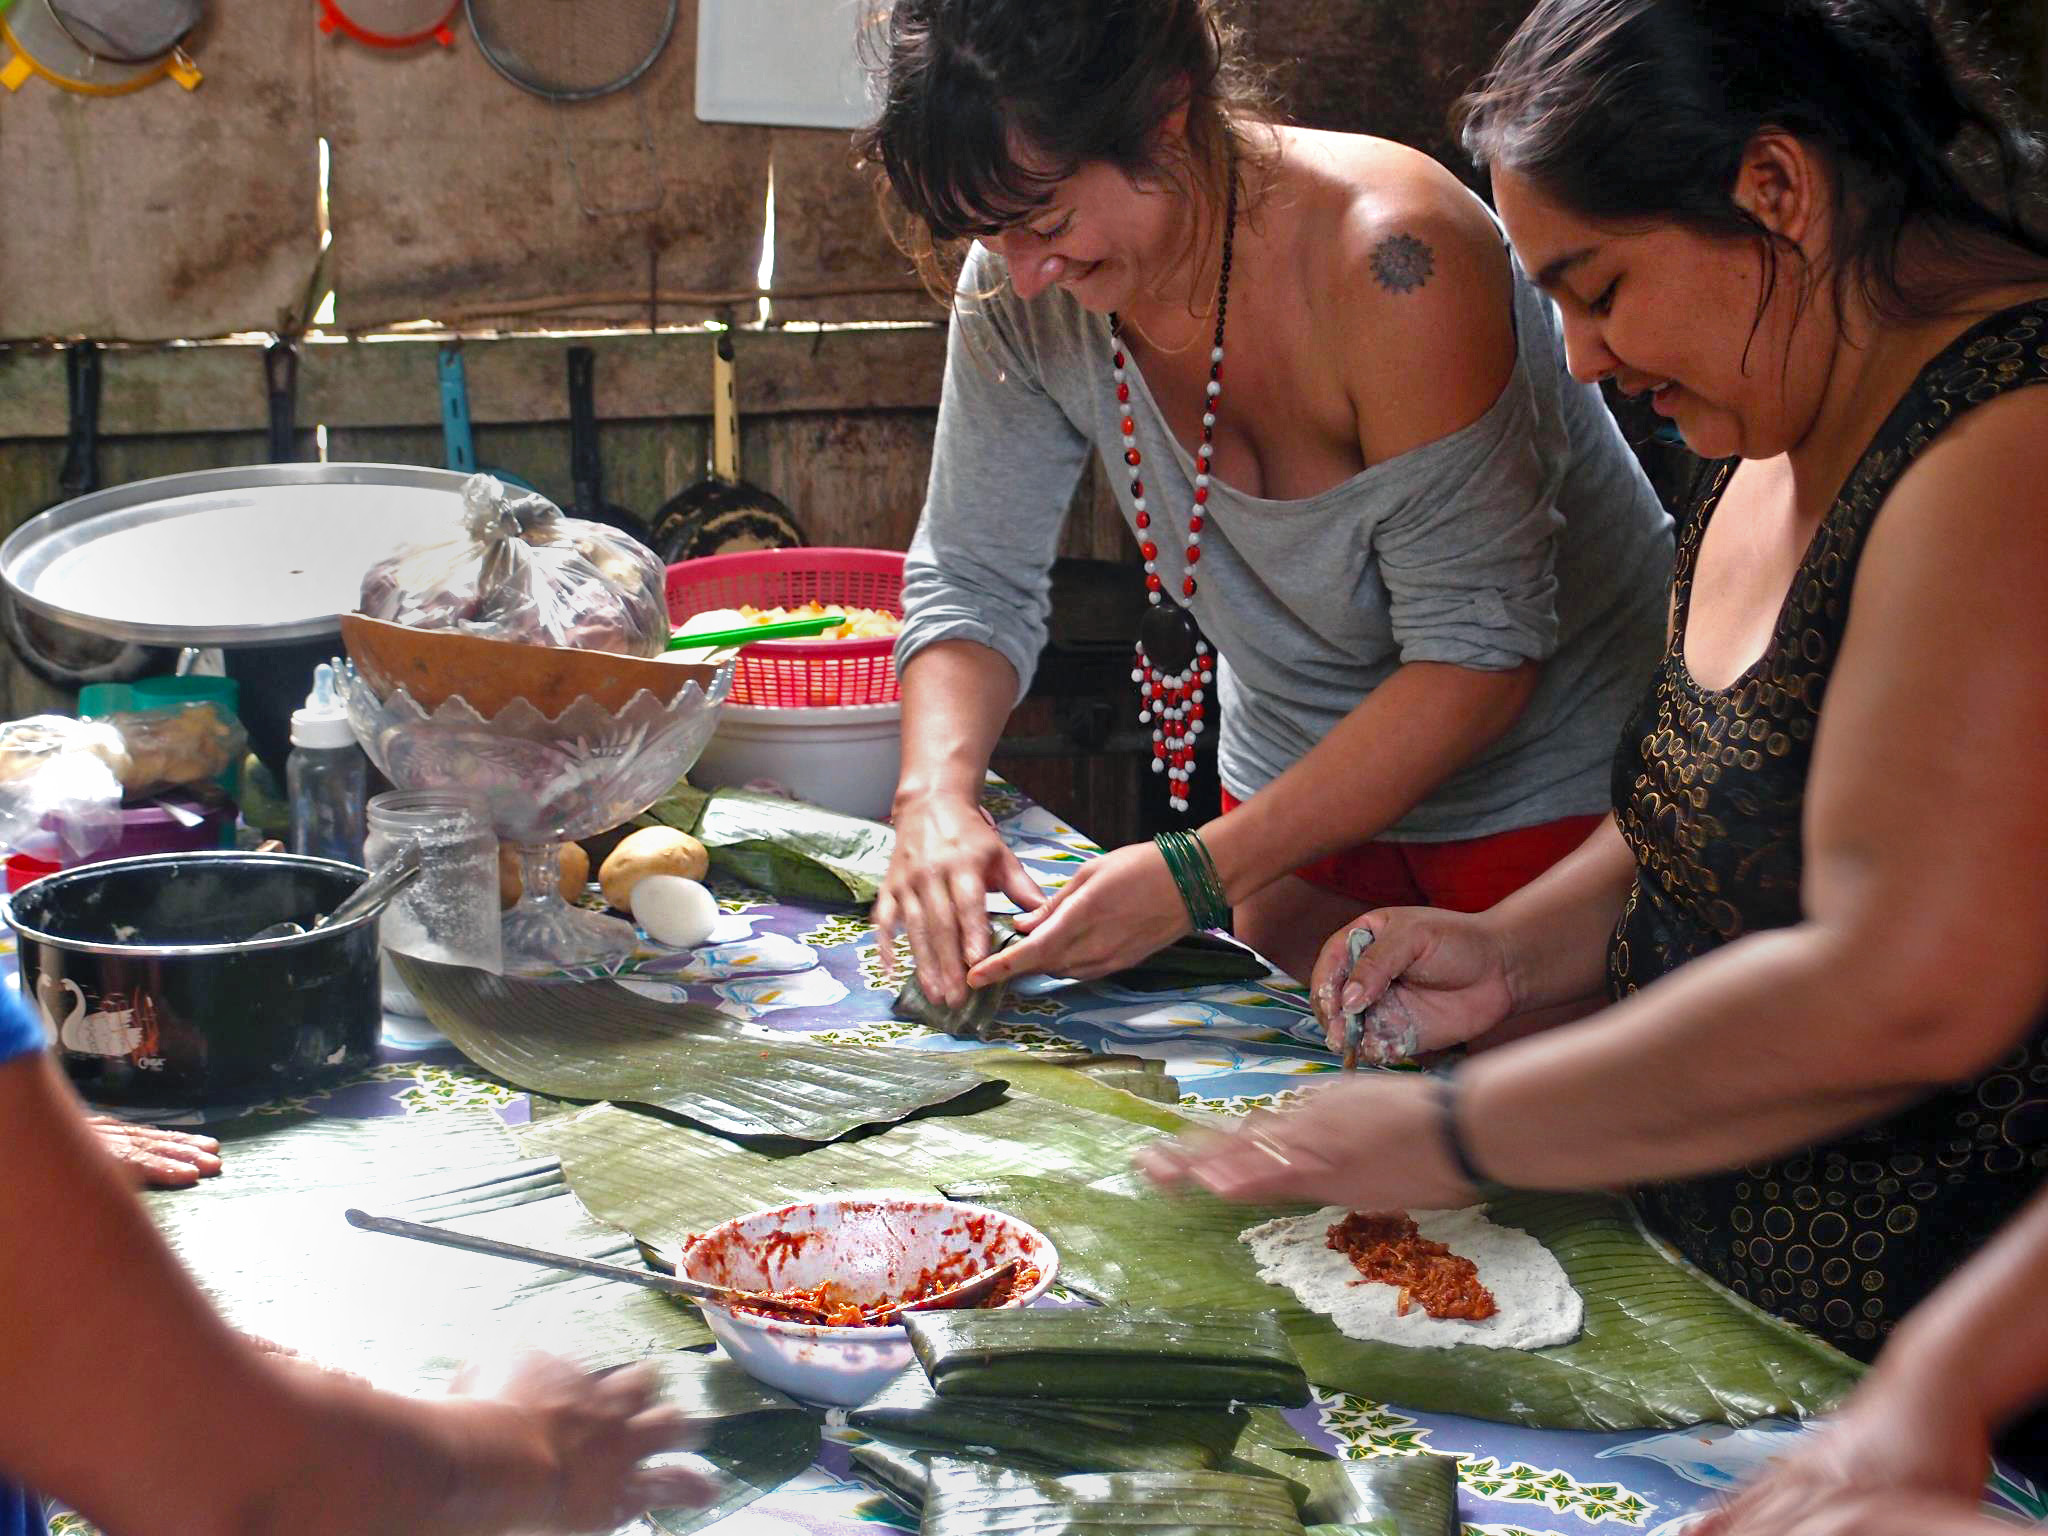 I had a blast cooking tamales for new years eve with Lancandon indigenous women in Chiapas - Mexico.